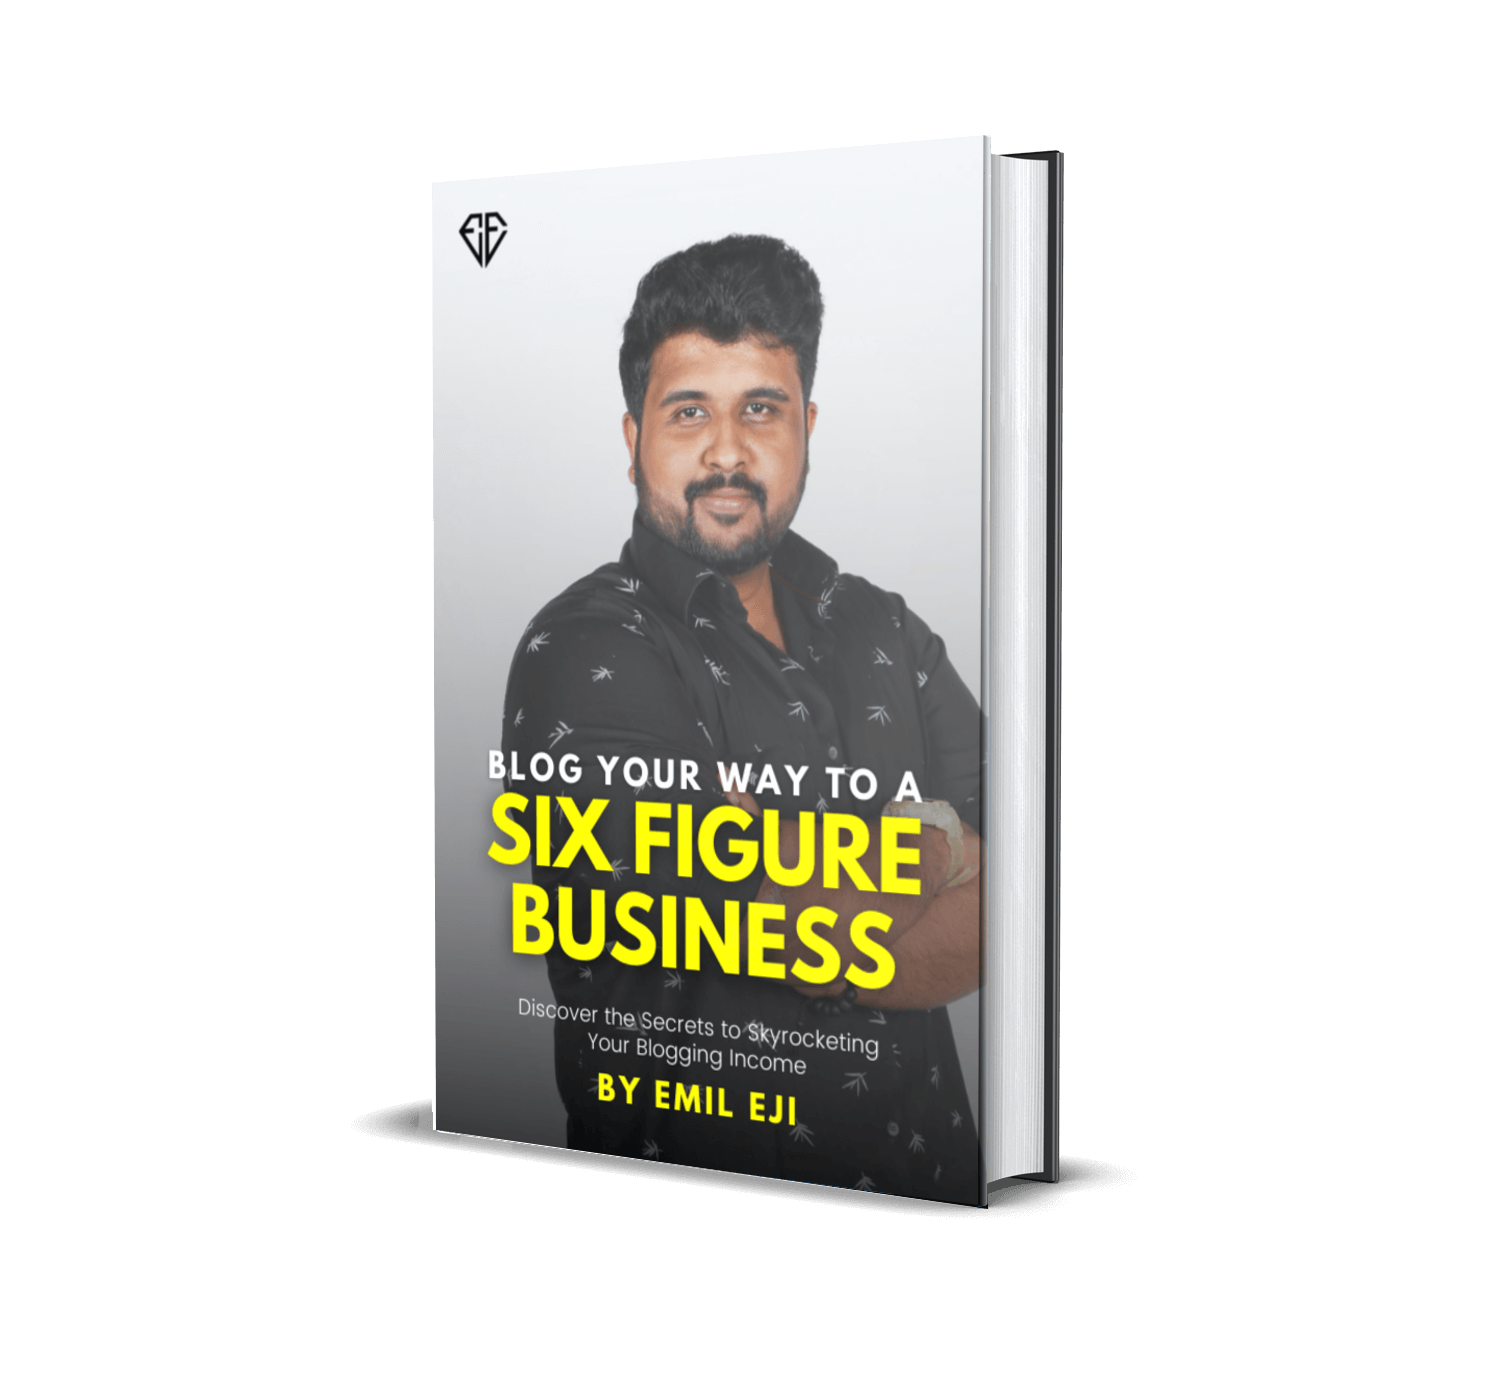 blog your way to a six figure business